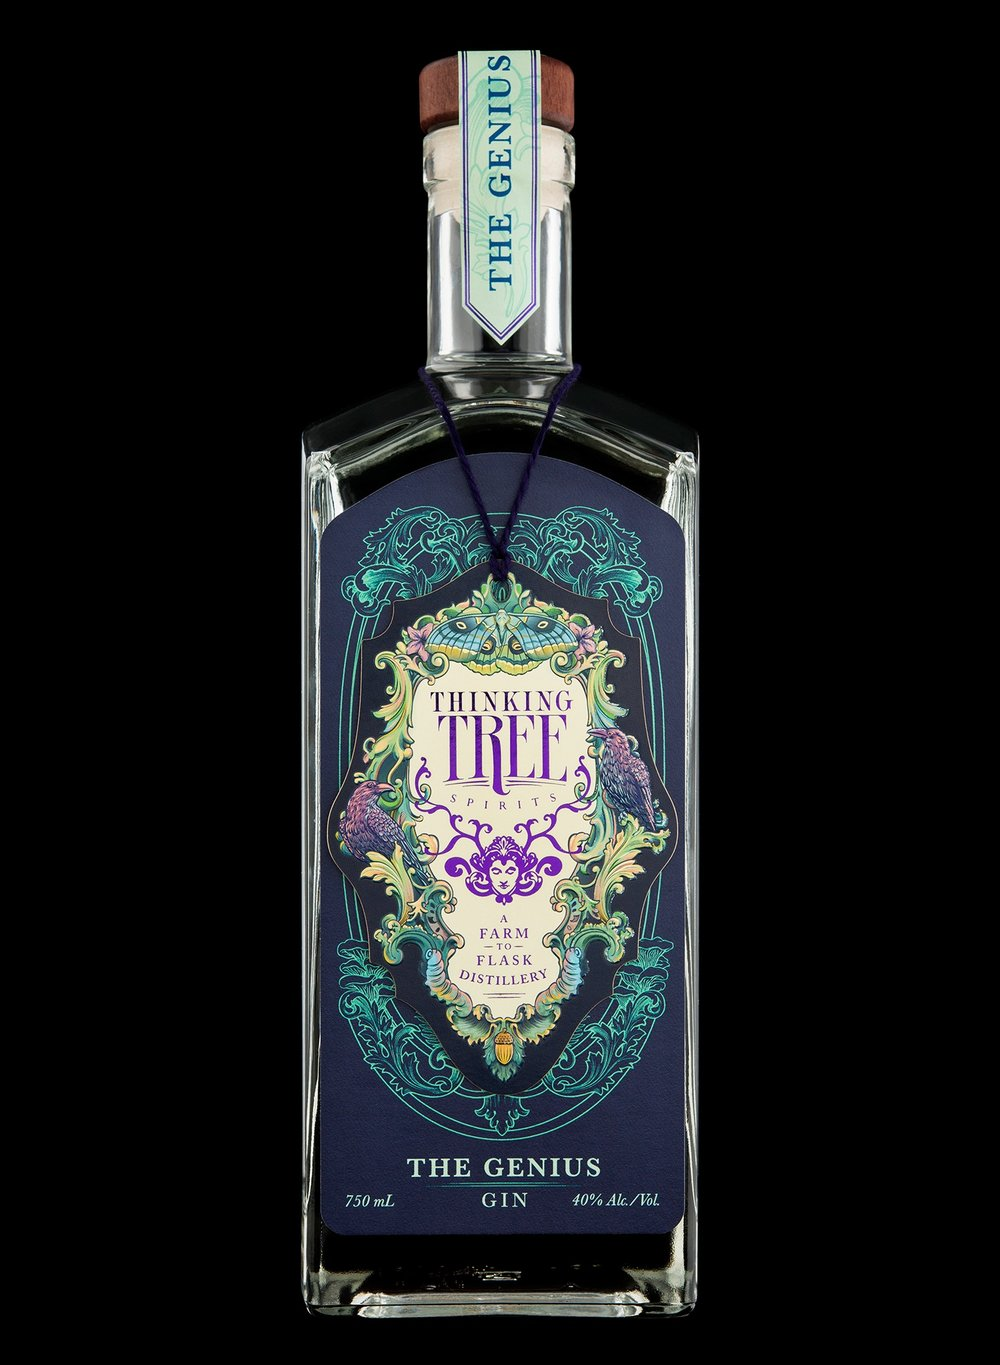 Branding and Packaging Design for Thinking Tree Spirits